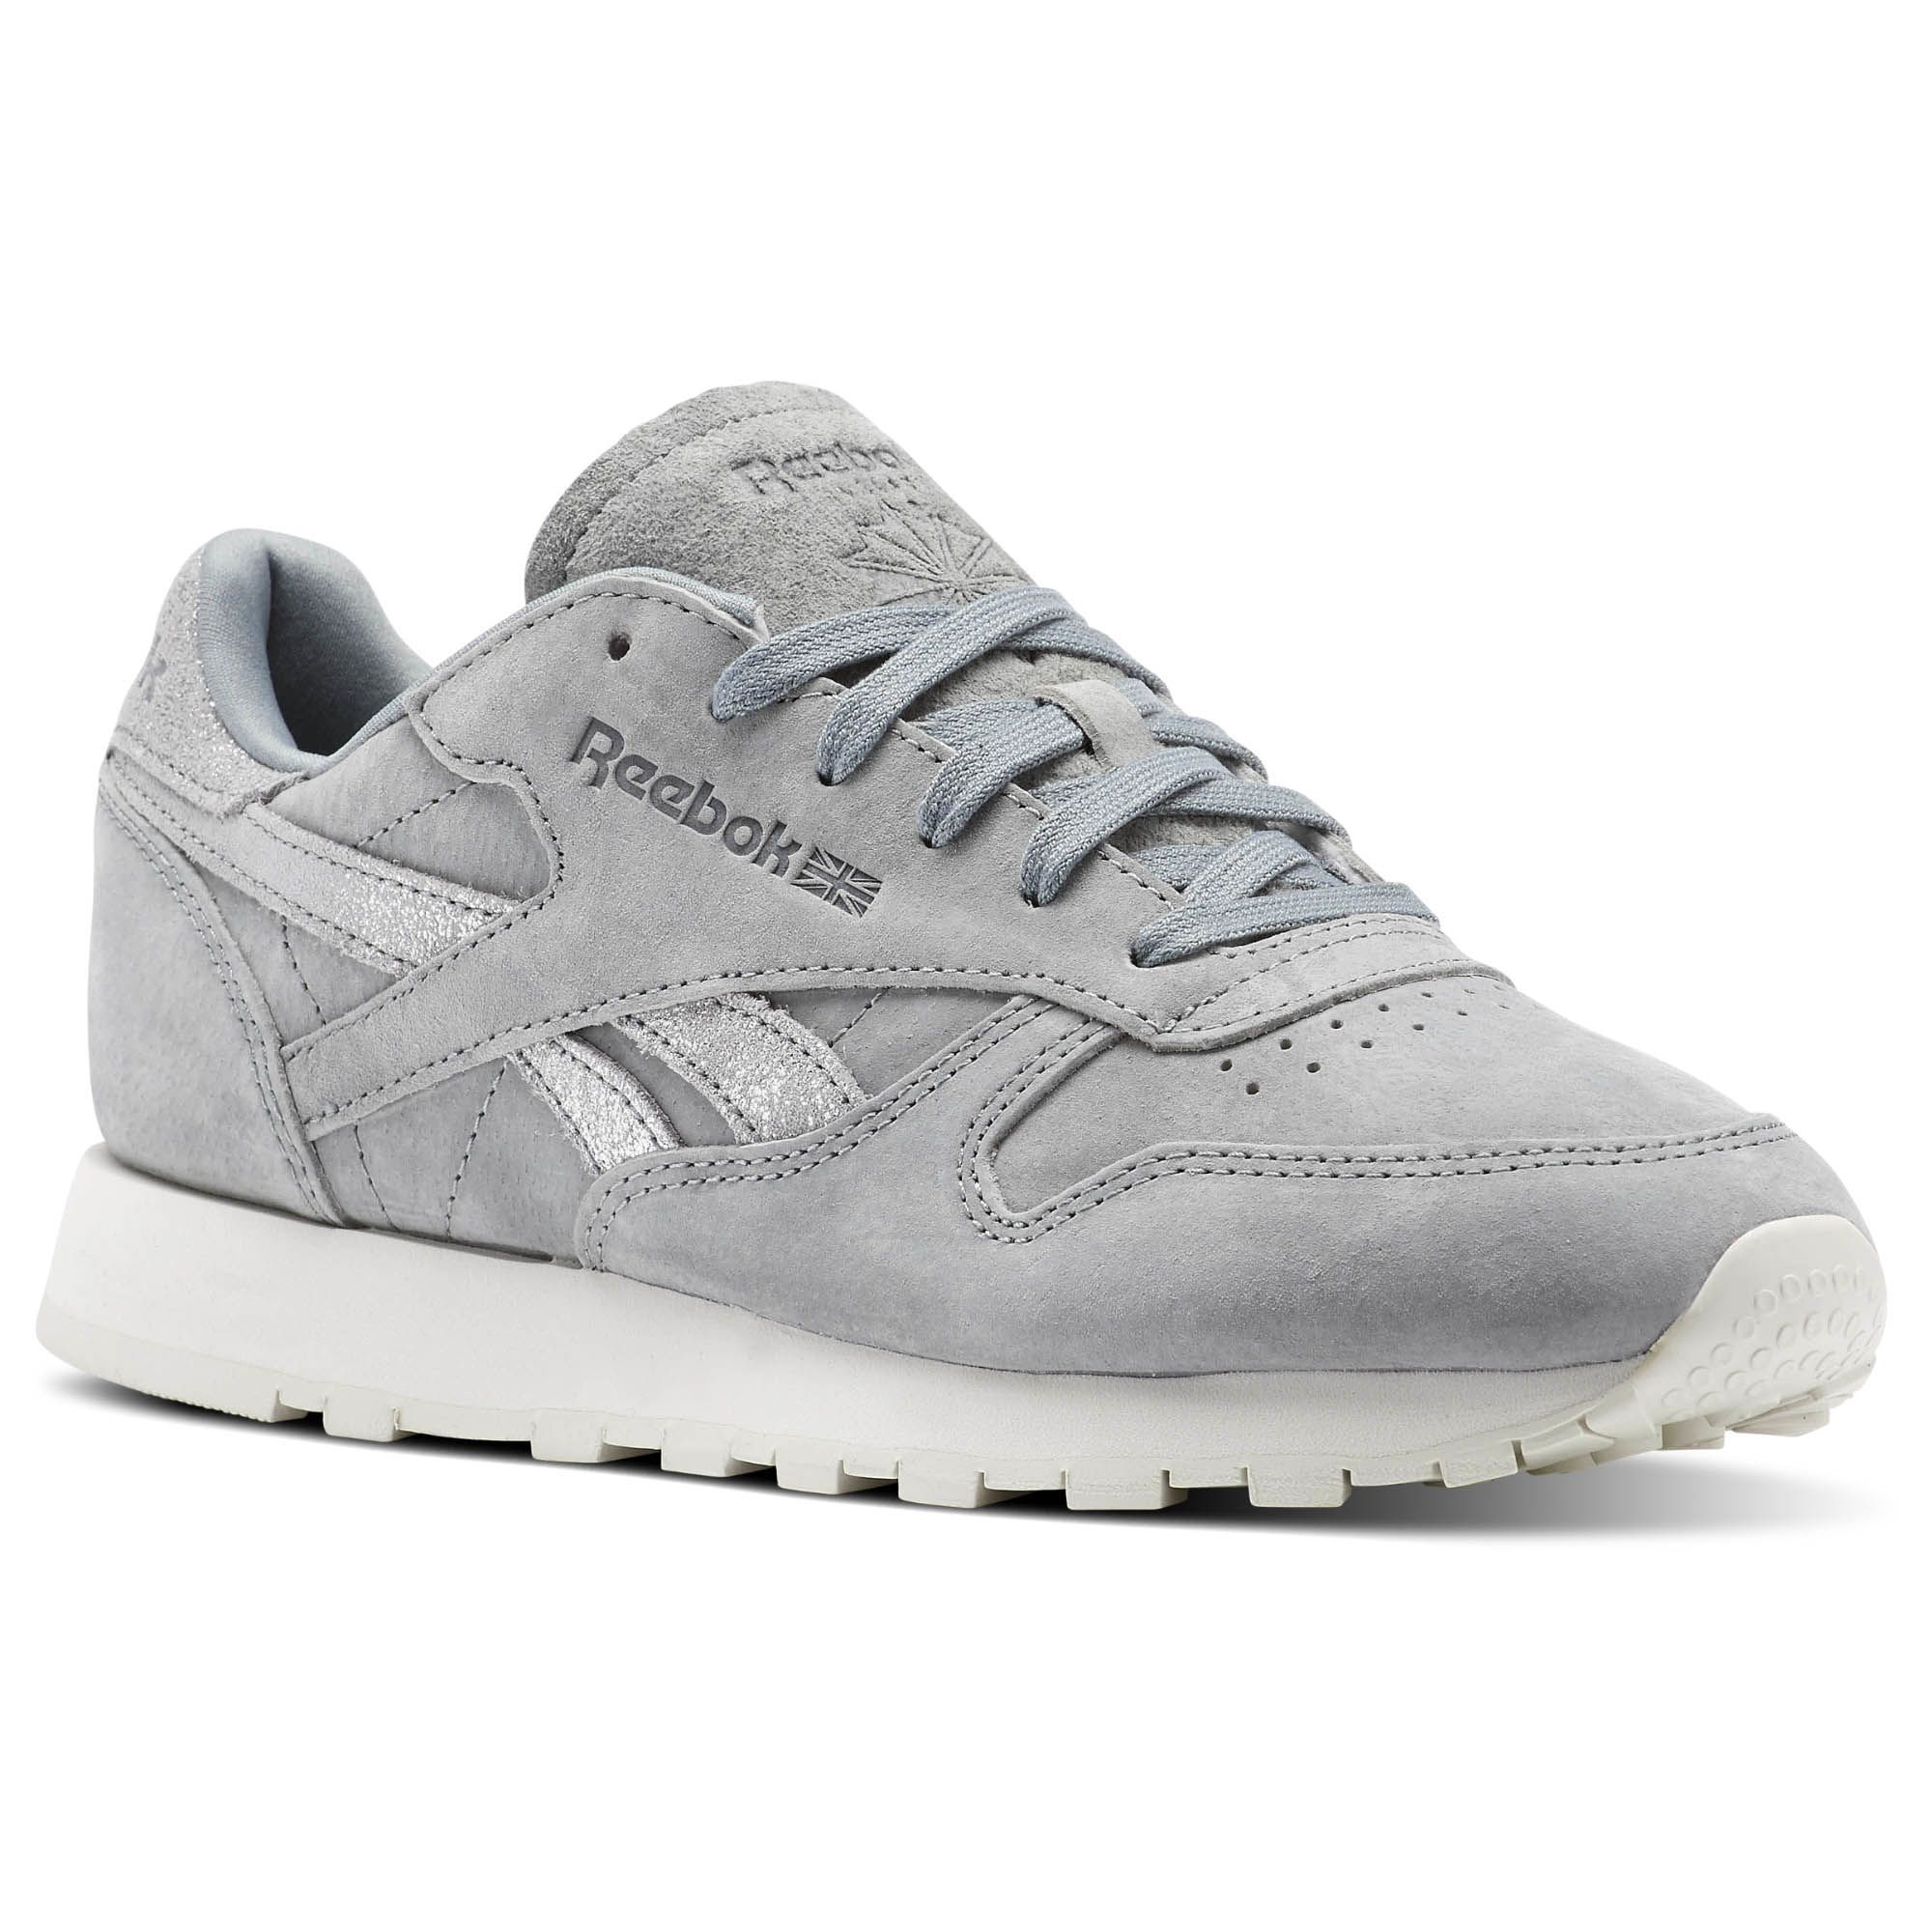 classic leather shimmer reebok, OFF 74